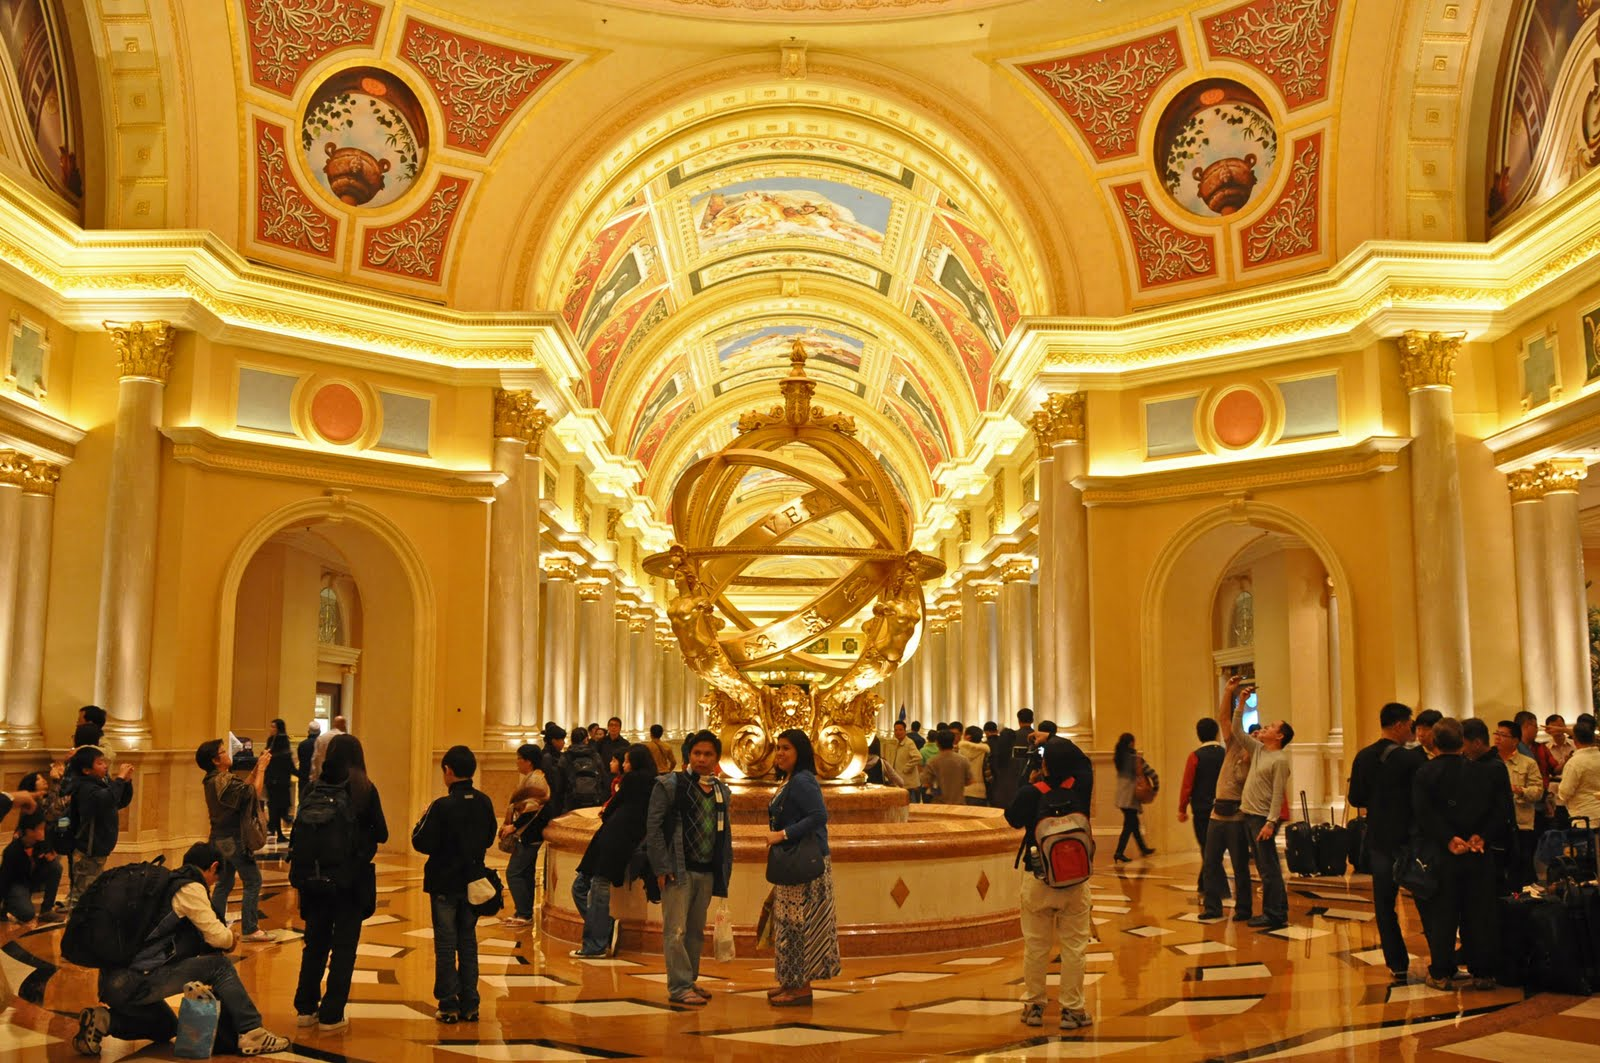 Macau The Gambling Paradise Of Asia The Travel Monster